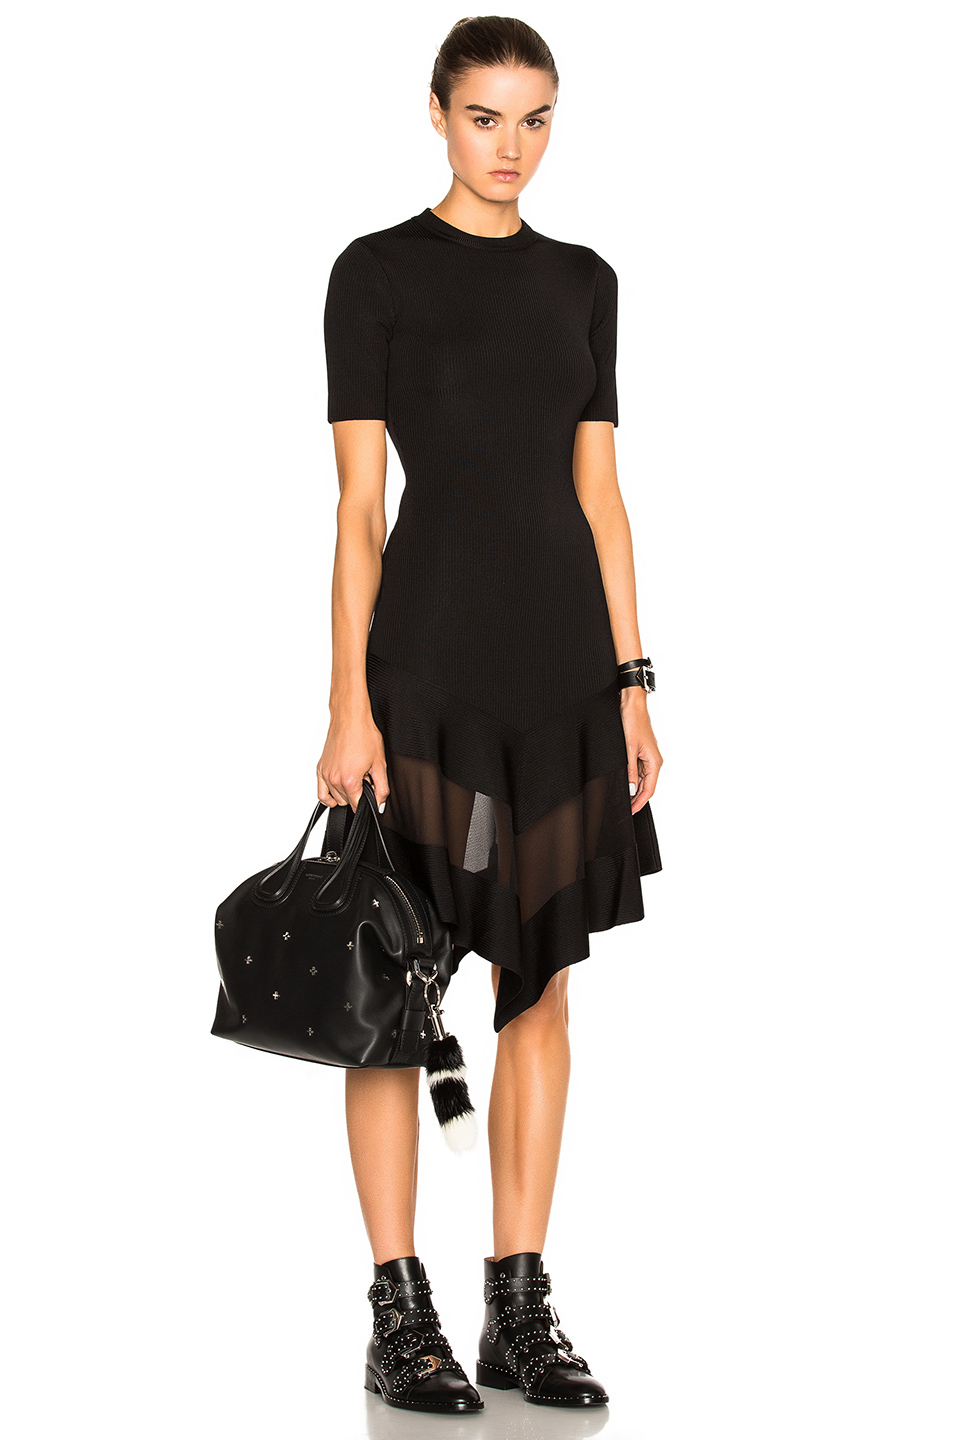 Givenchy Short Sleeve Dress in Black